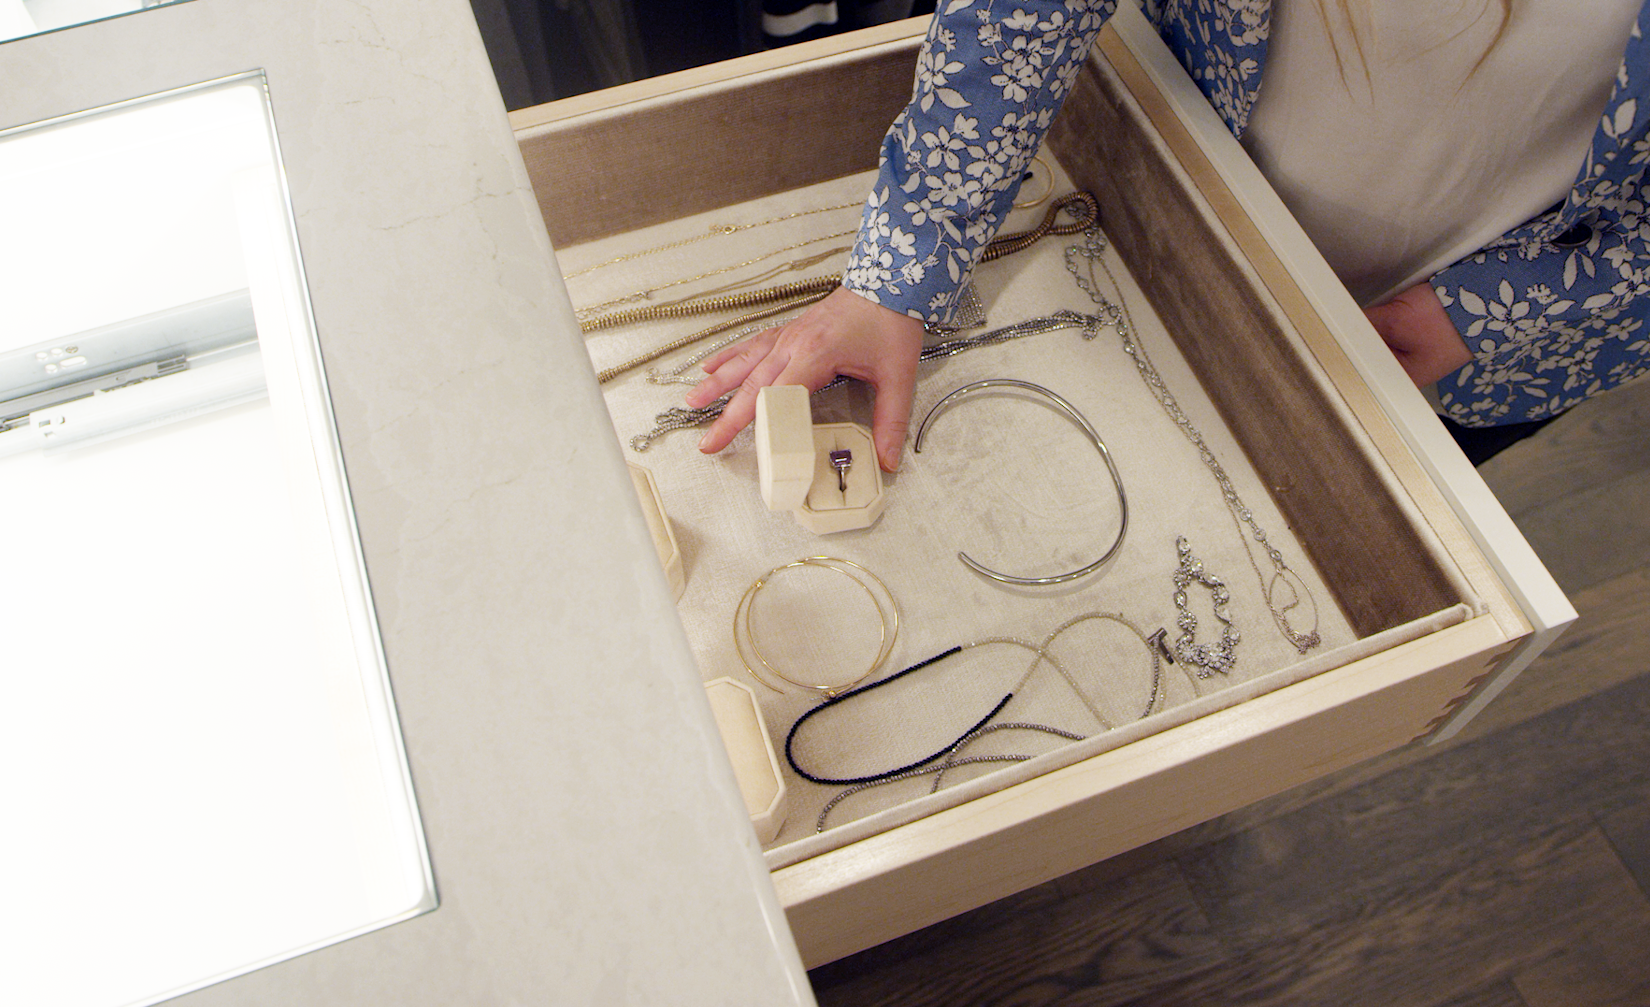 Carly Zucker shows a detailed view of an organized jewelry drawer.